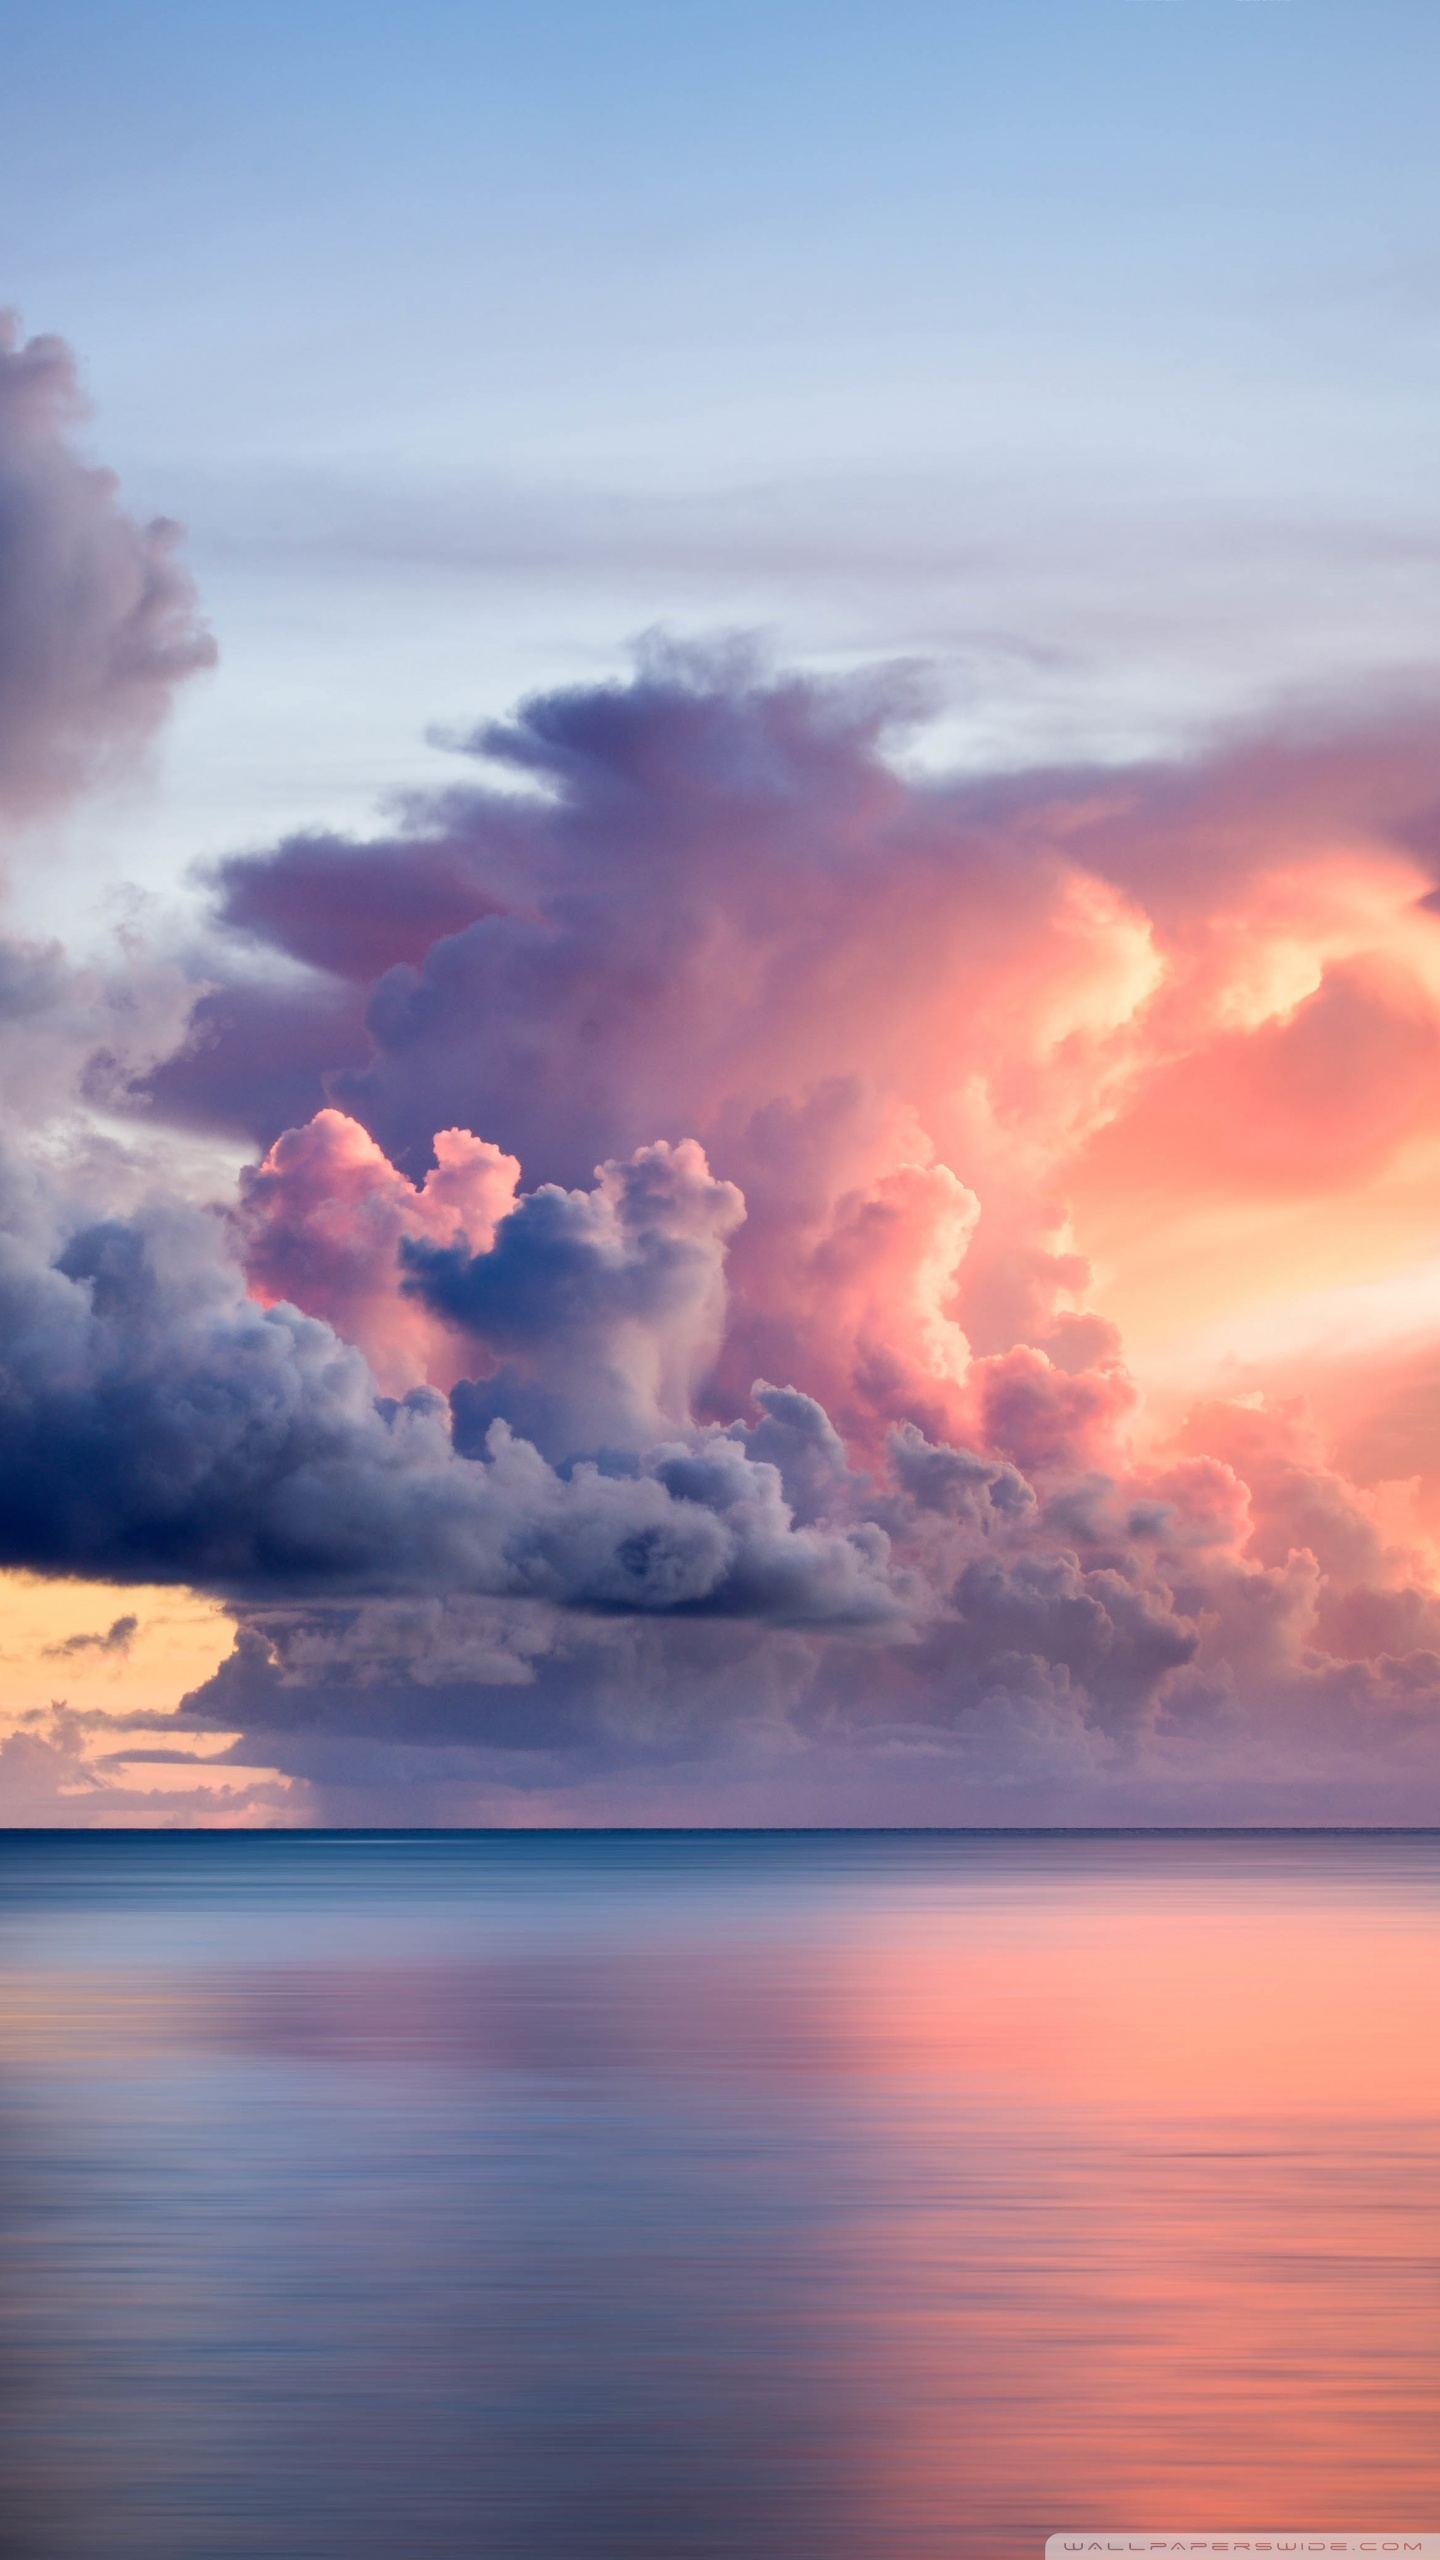 Desktop Wallpaper Images High Resolution Fall Free Photo Sunset Clouds Setting Sunset Set Free